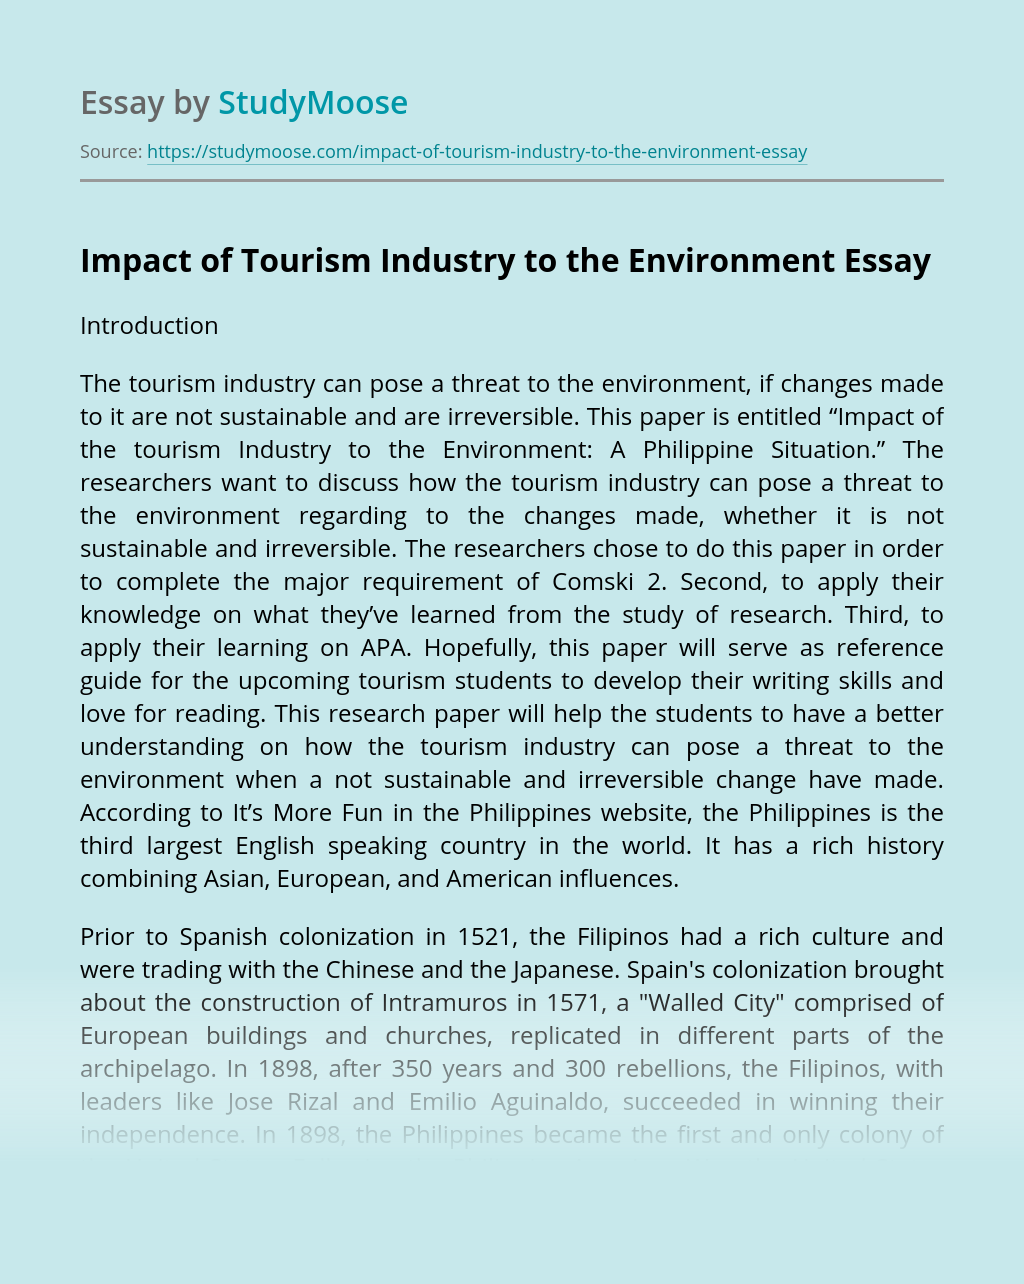 Impact of Tourism Industry to the Environment